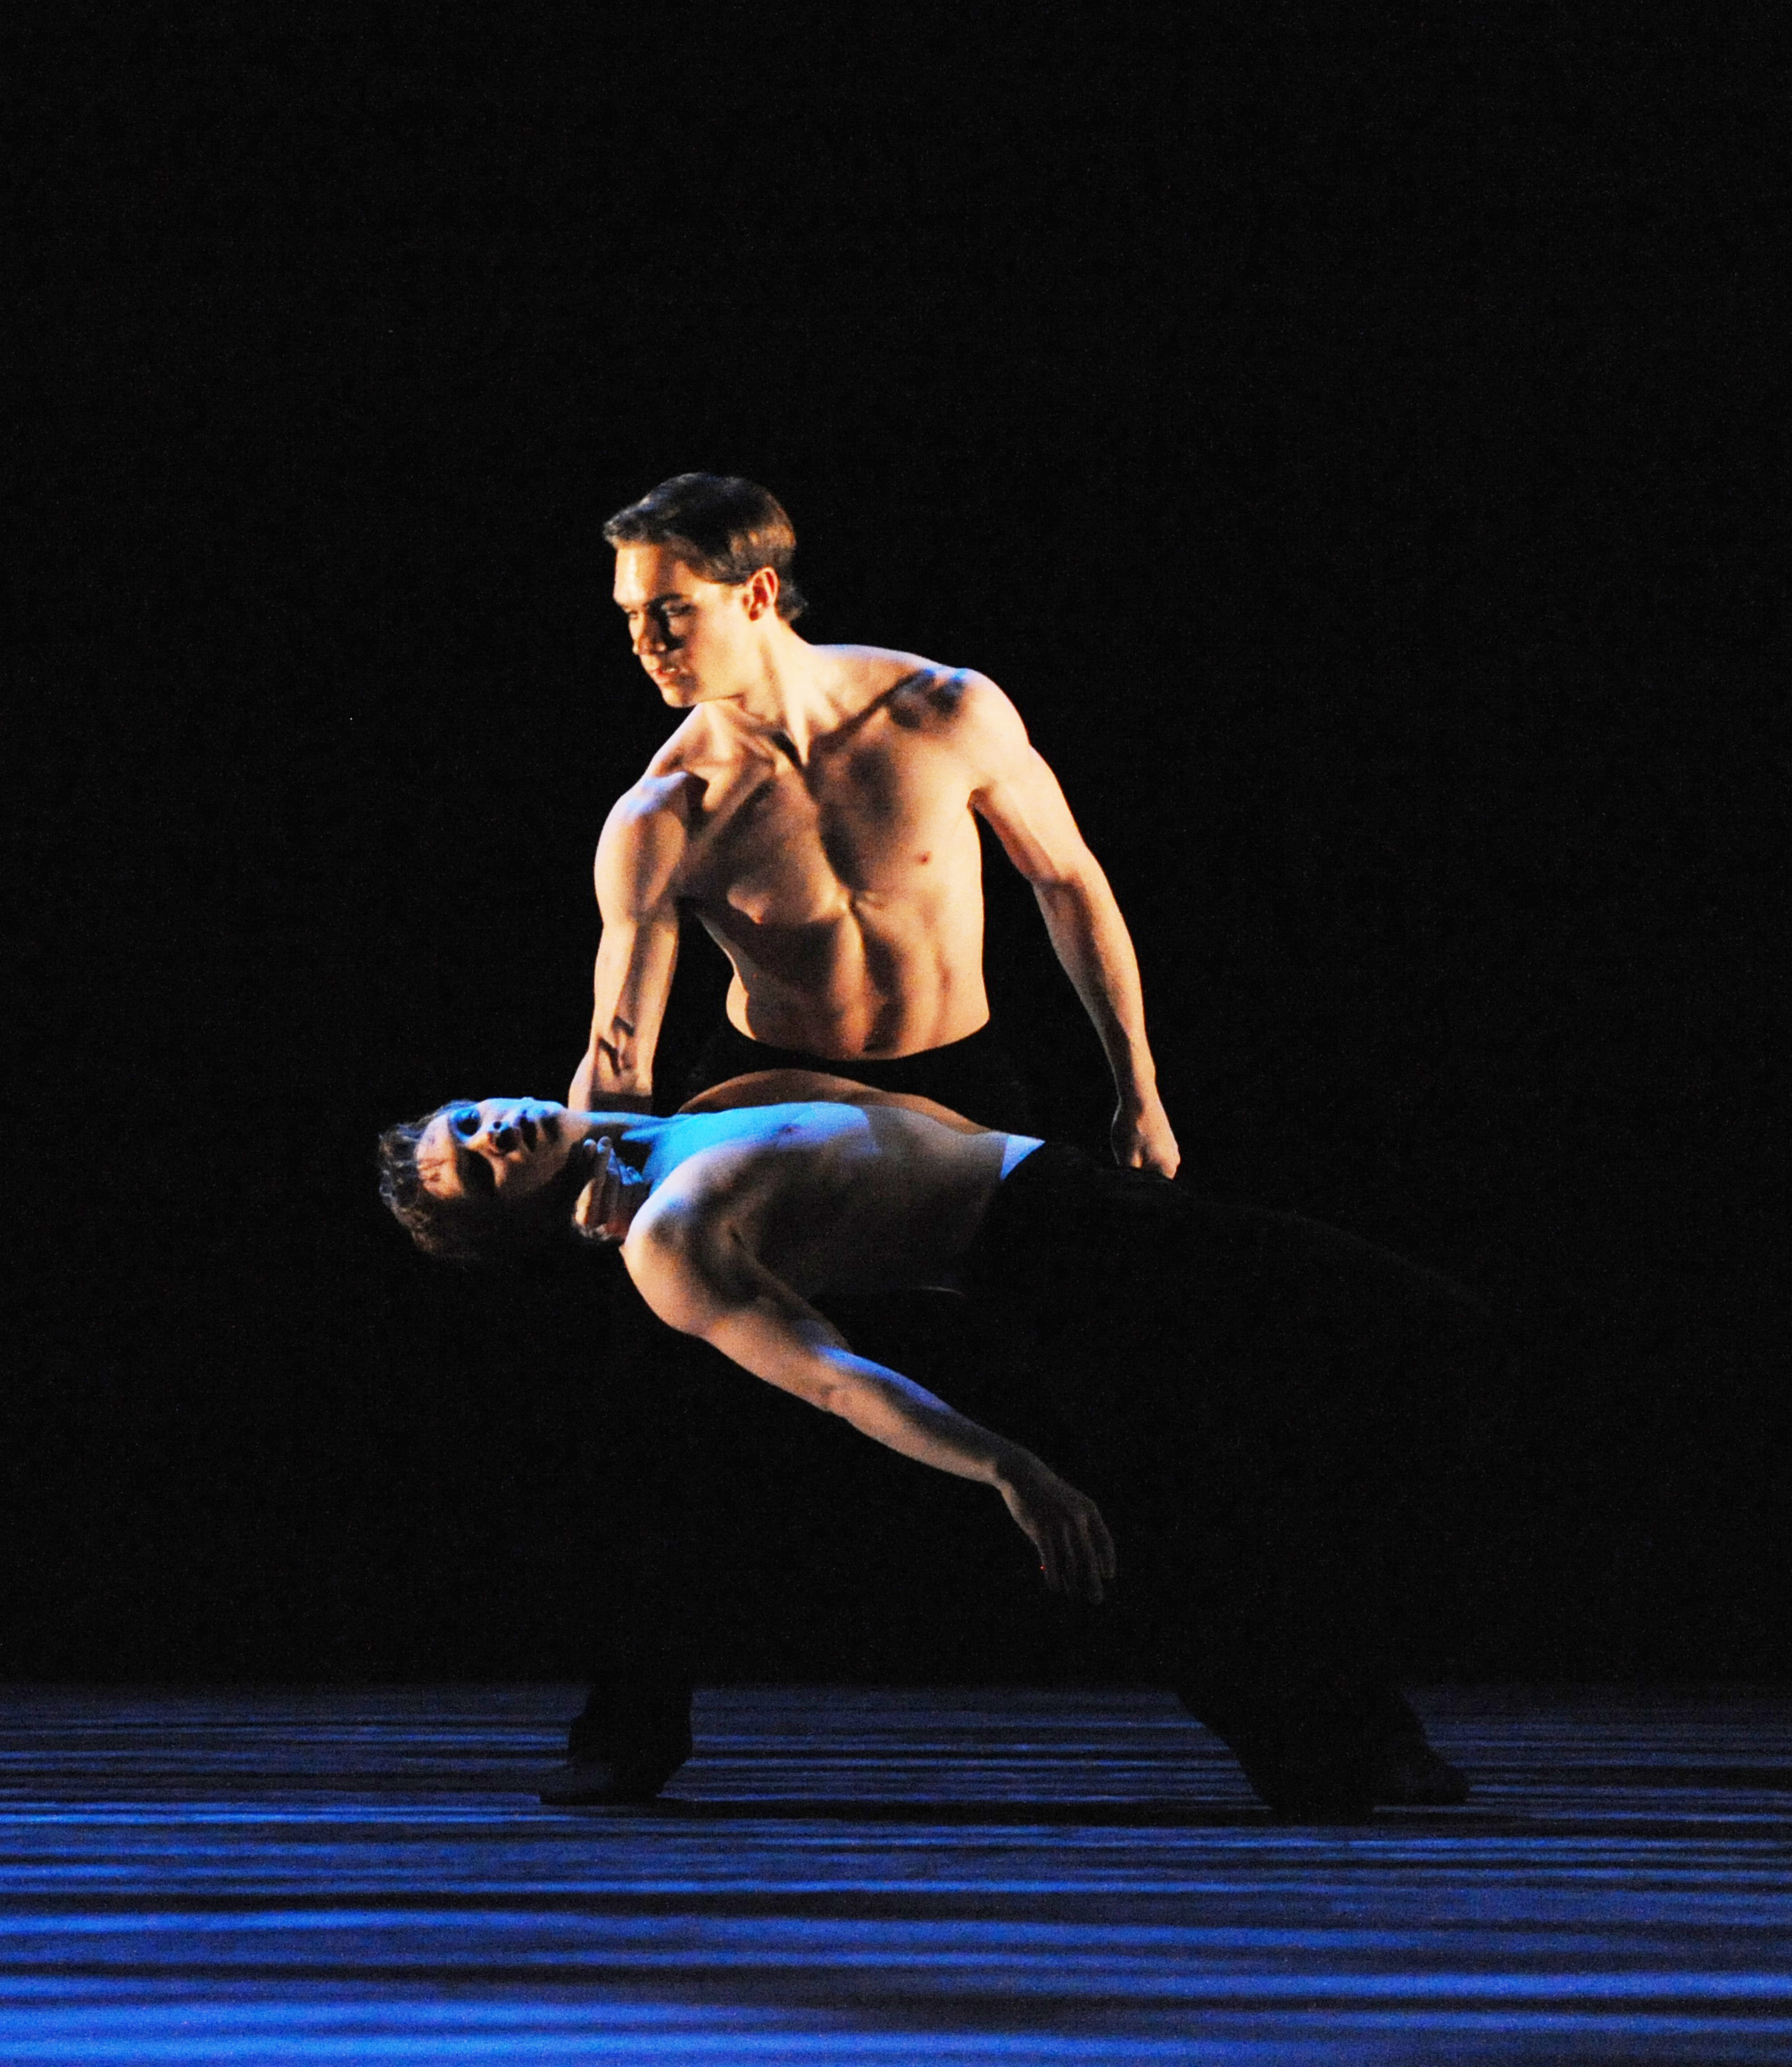 dancer bare chested on stage